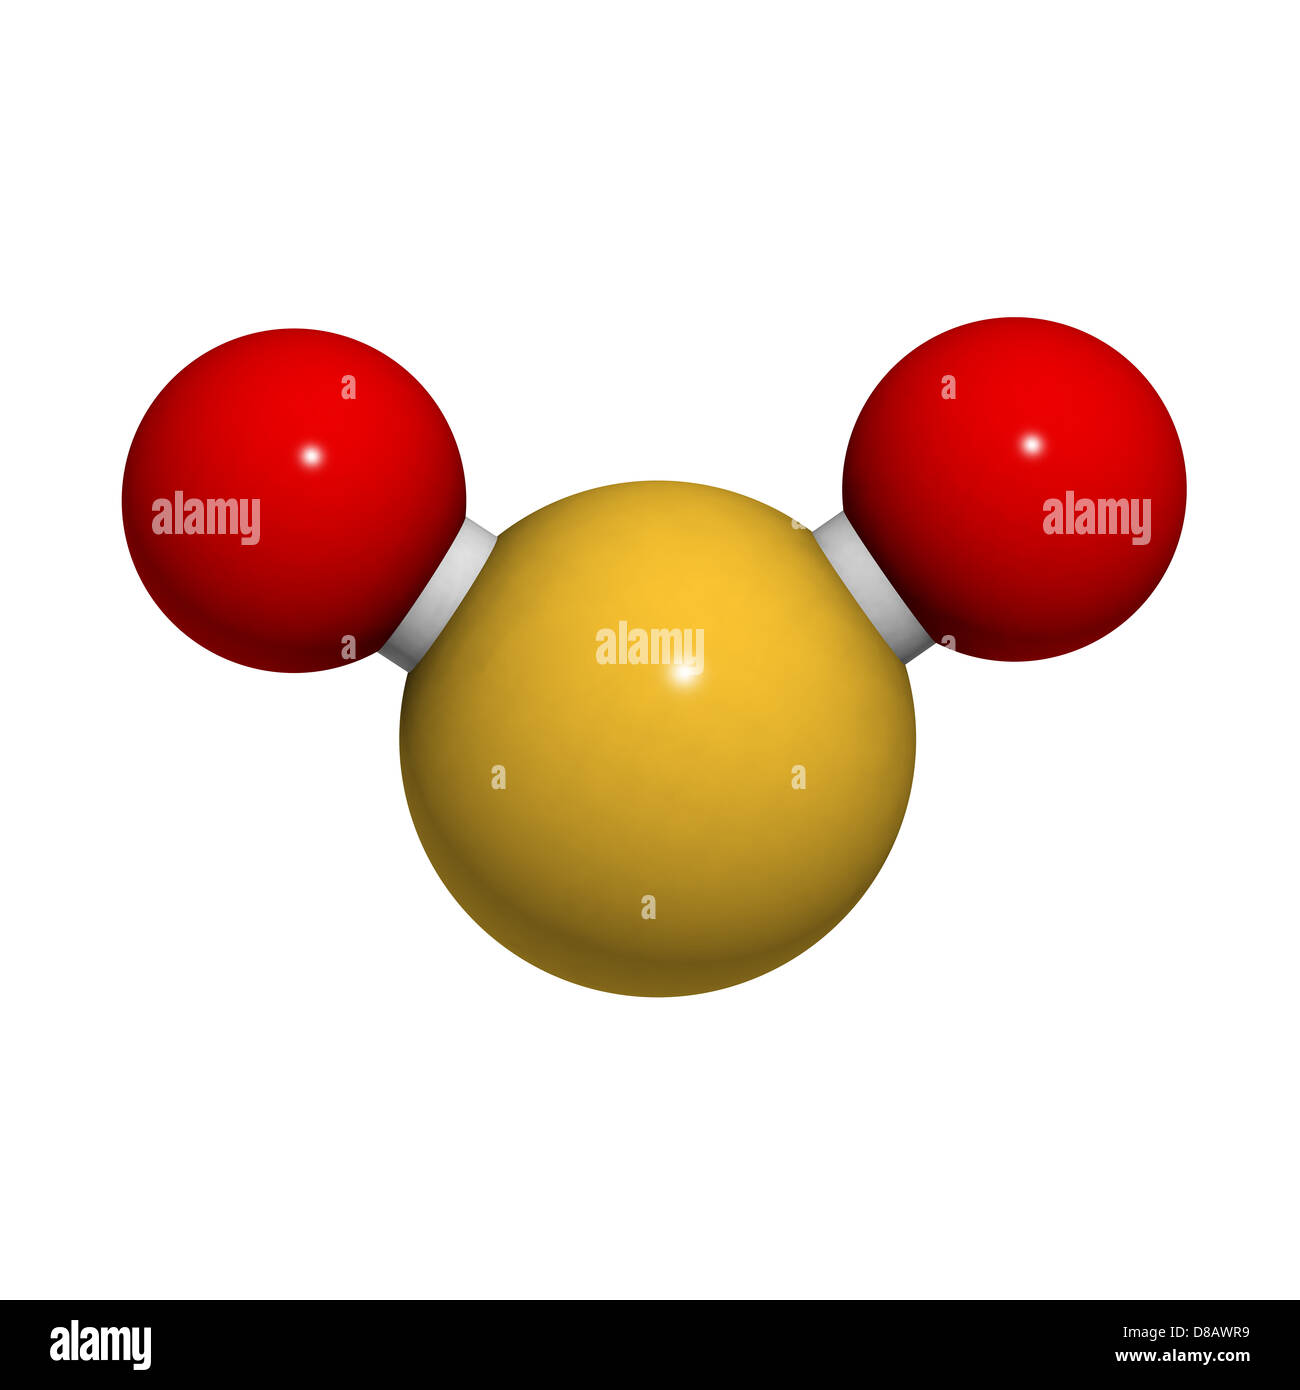 Sulfur dioxide (sulphur dioxide, SO2) gas, molecular model. SO2 (E220) is also used in winemaking. - Stock Image